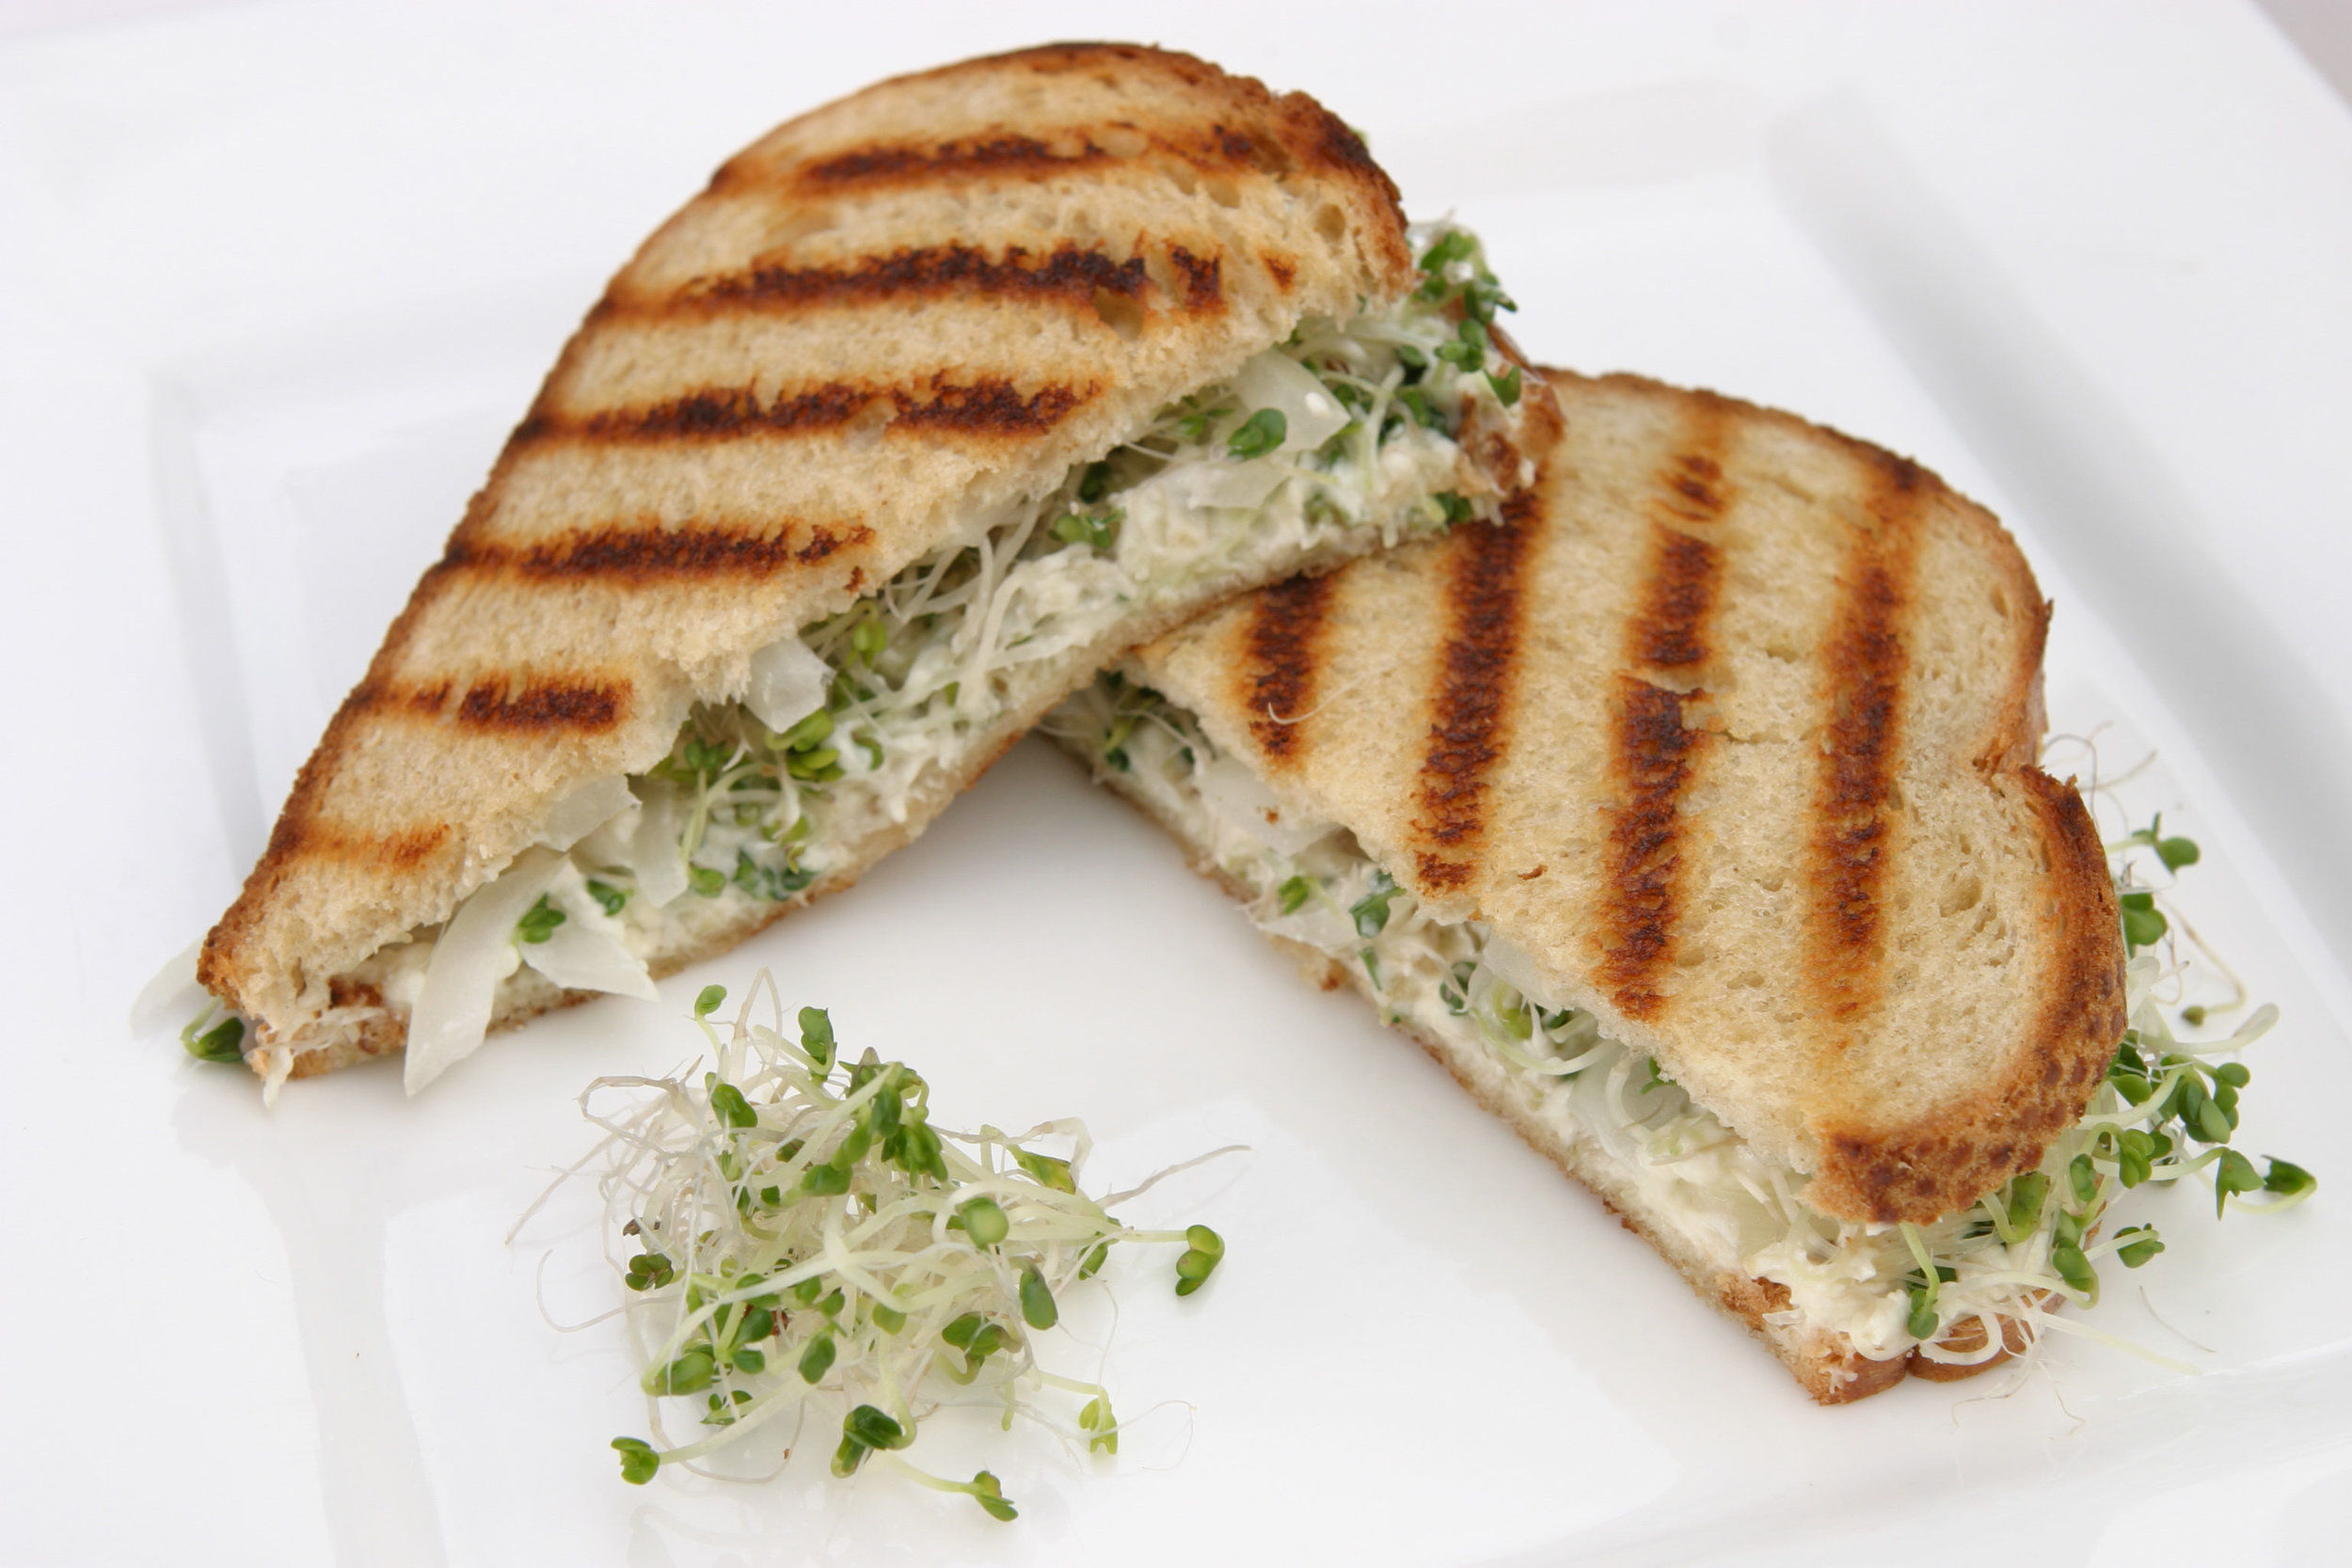 broccoli-sprout-sandwich.jpg